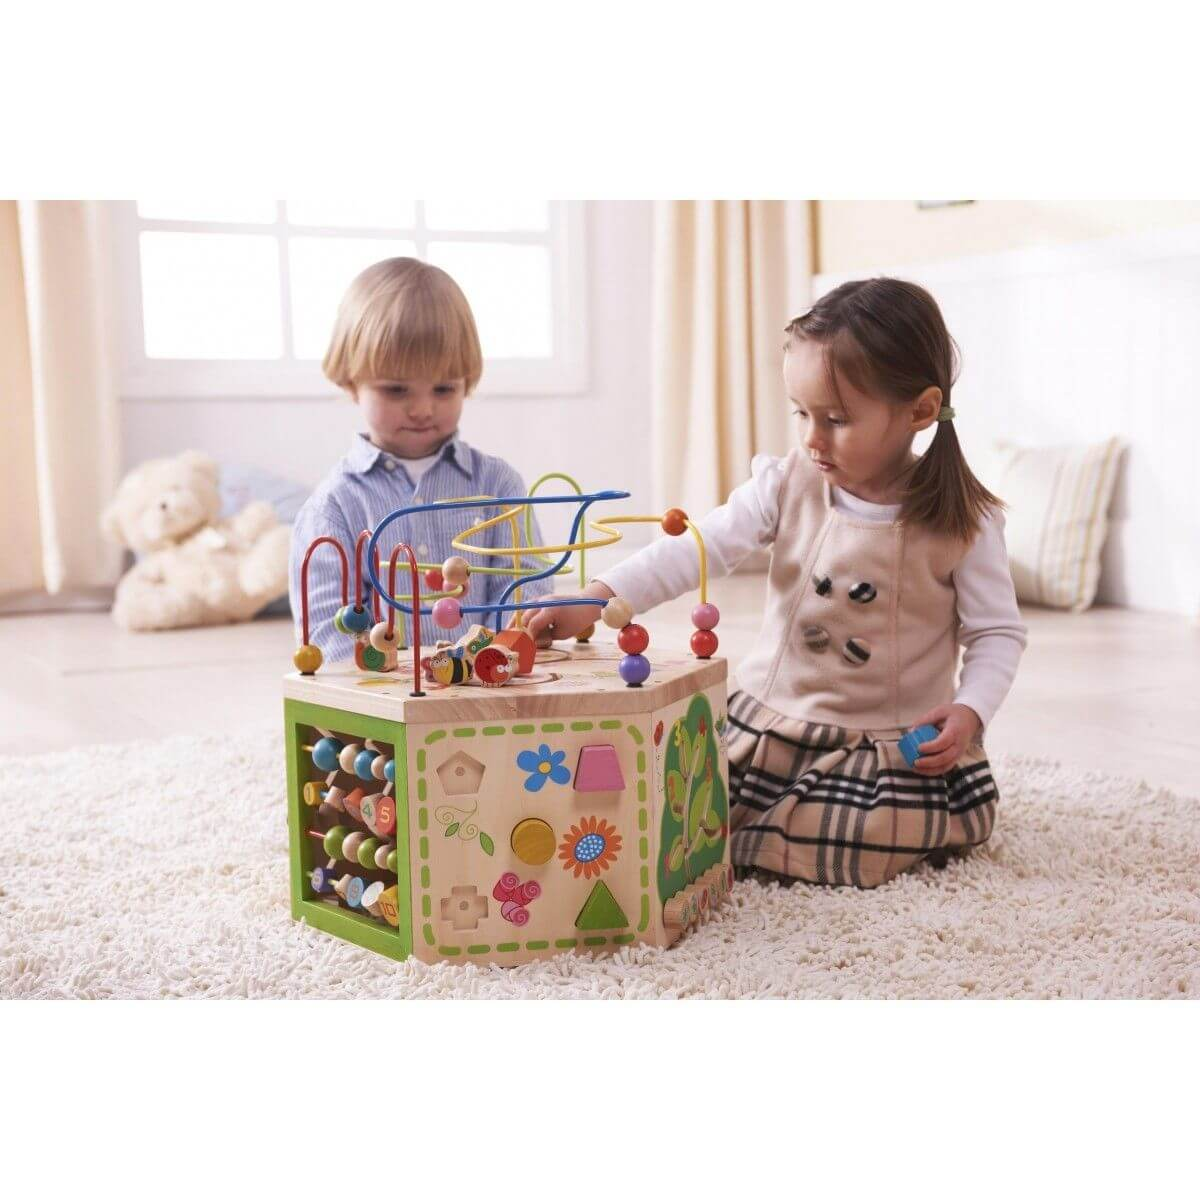 Everearth 7 In 1 Garden Activity Cube Jadrem Toys